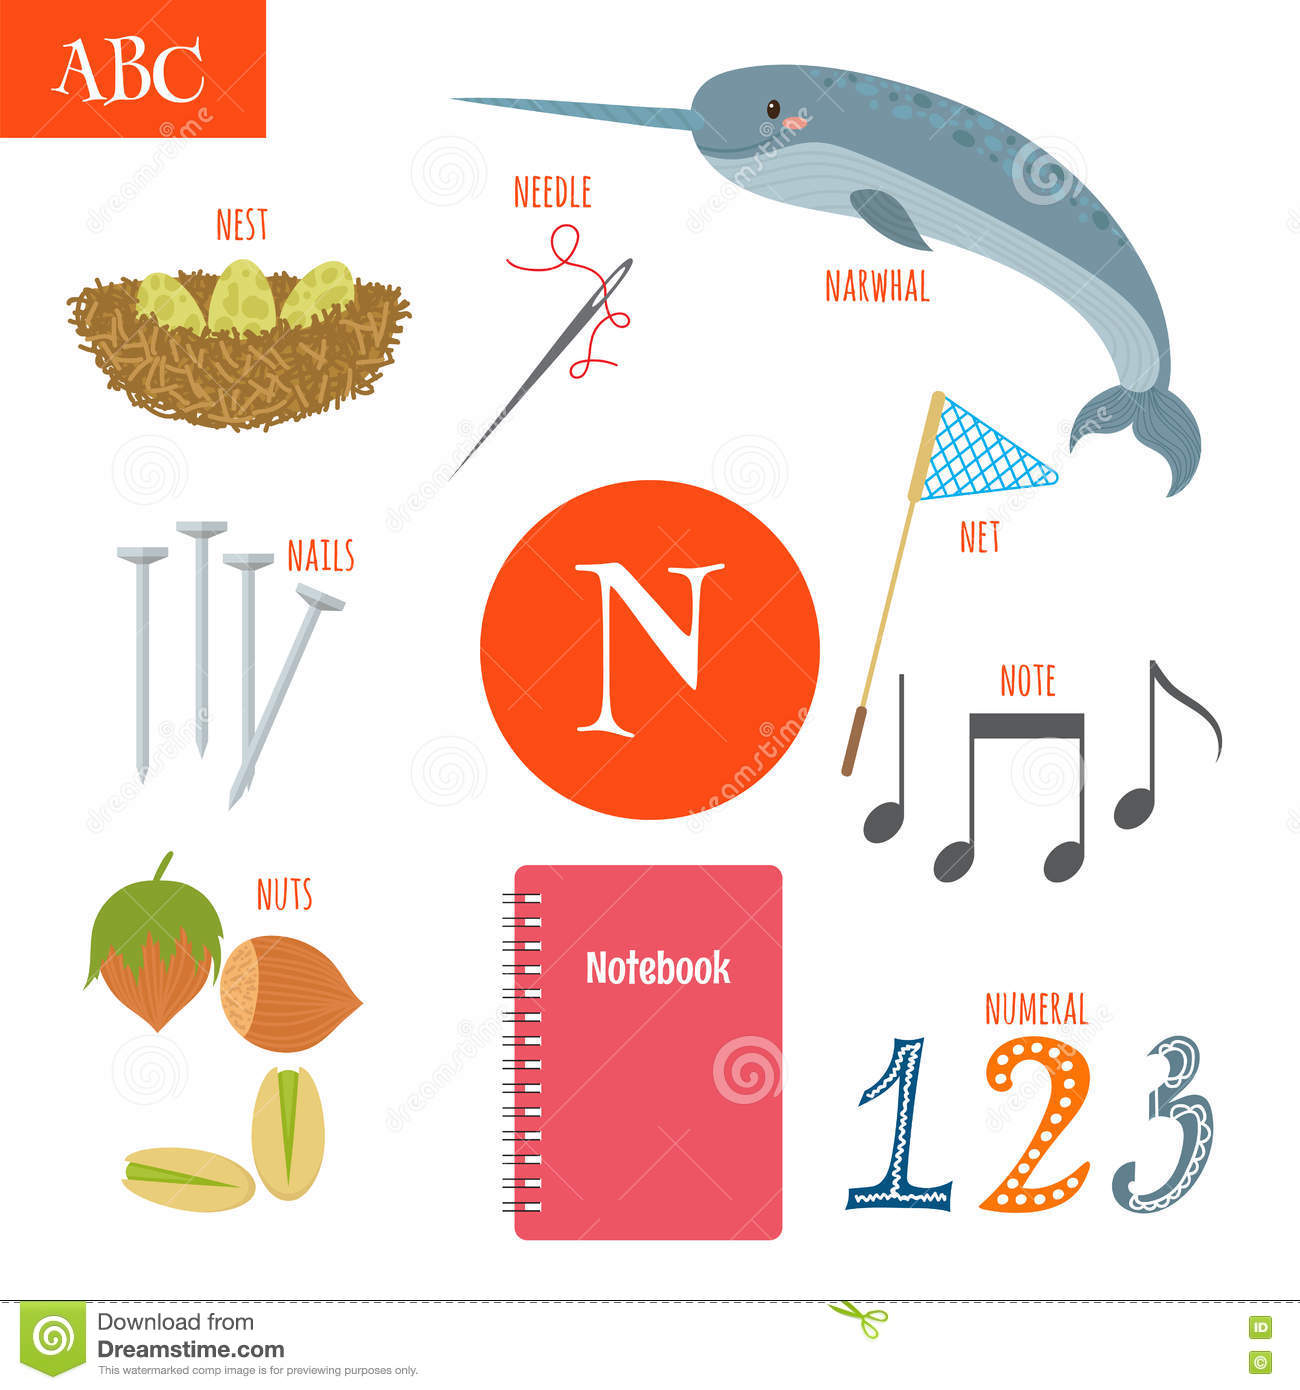 Letter N With Cartoon Narwhal Cartoon Vector